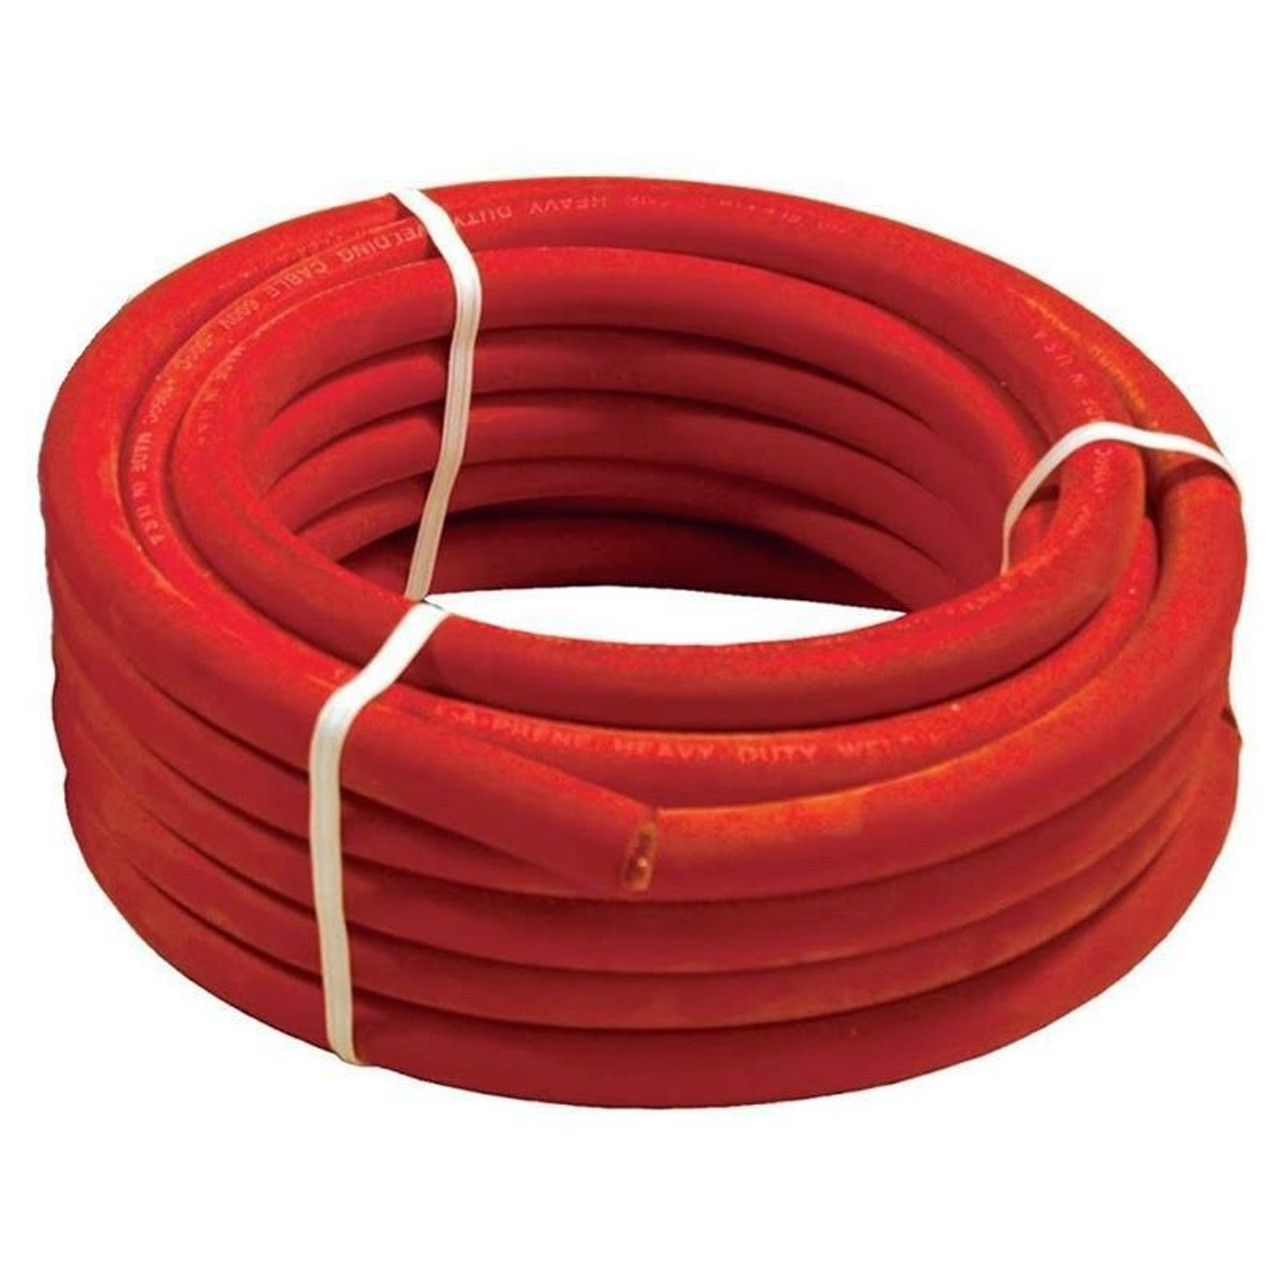 25 Foot of Red 1/0 Flex-A-Prene Welding and Battery Cable Made In USA